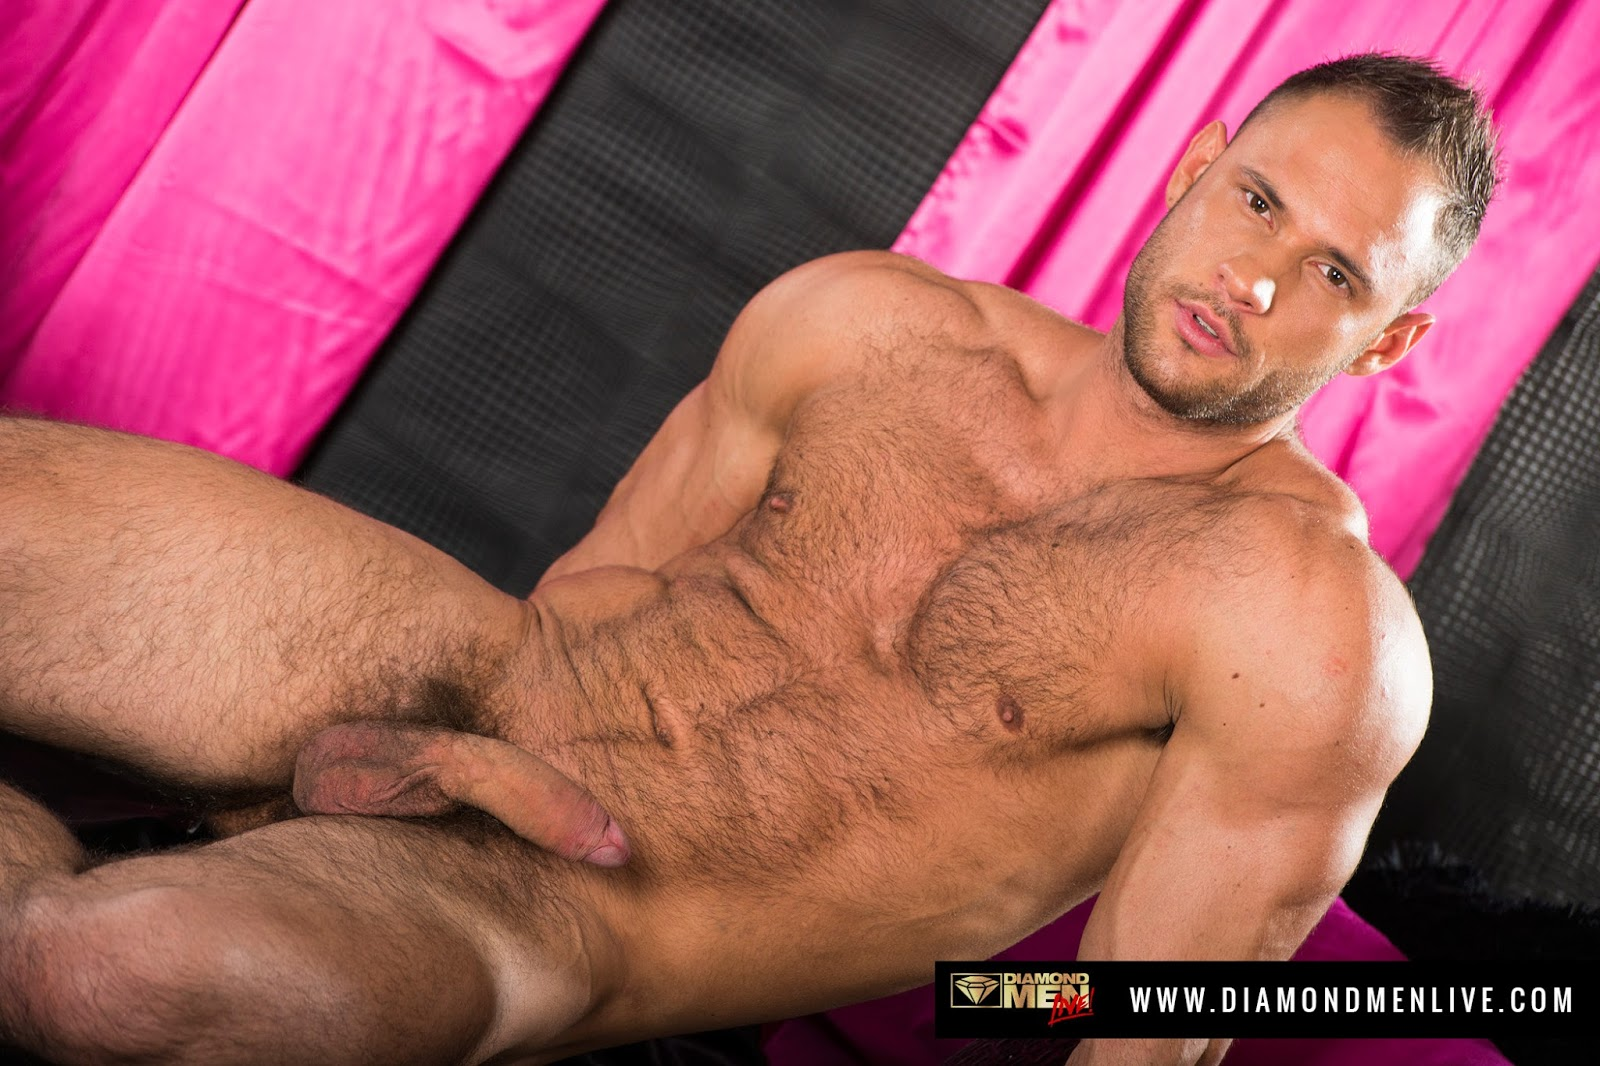 LOOK OTHER PHOTOS OF DENTON NUDE HERE IN OUR BLOG